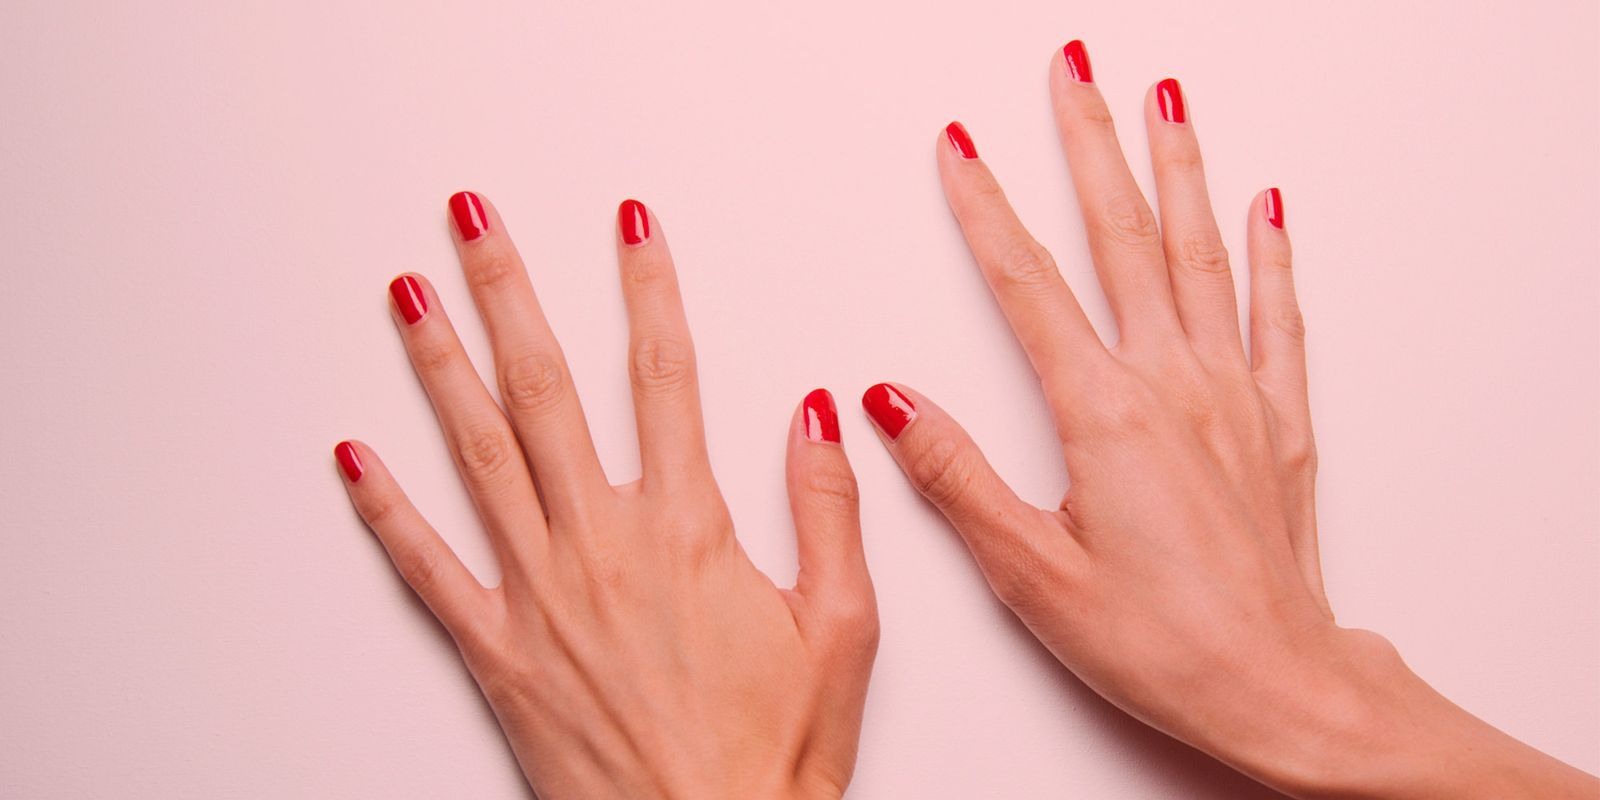 Will Gel Manicures Ruin Your Nails Gel Manicure Gel Nails Gel Nail Polish